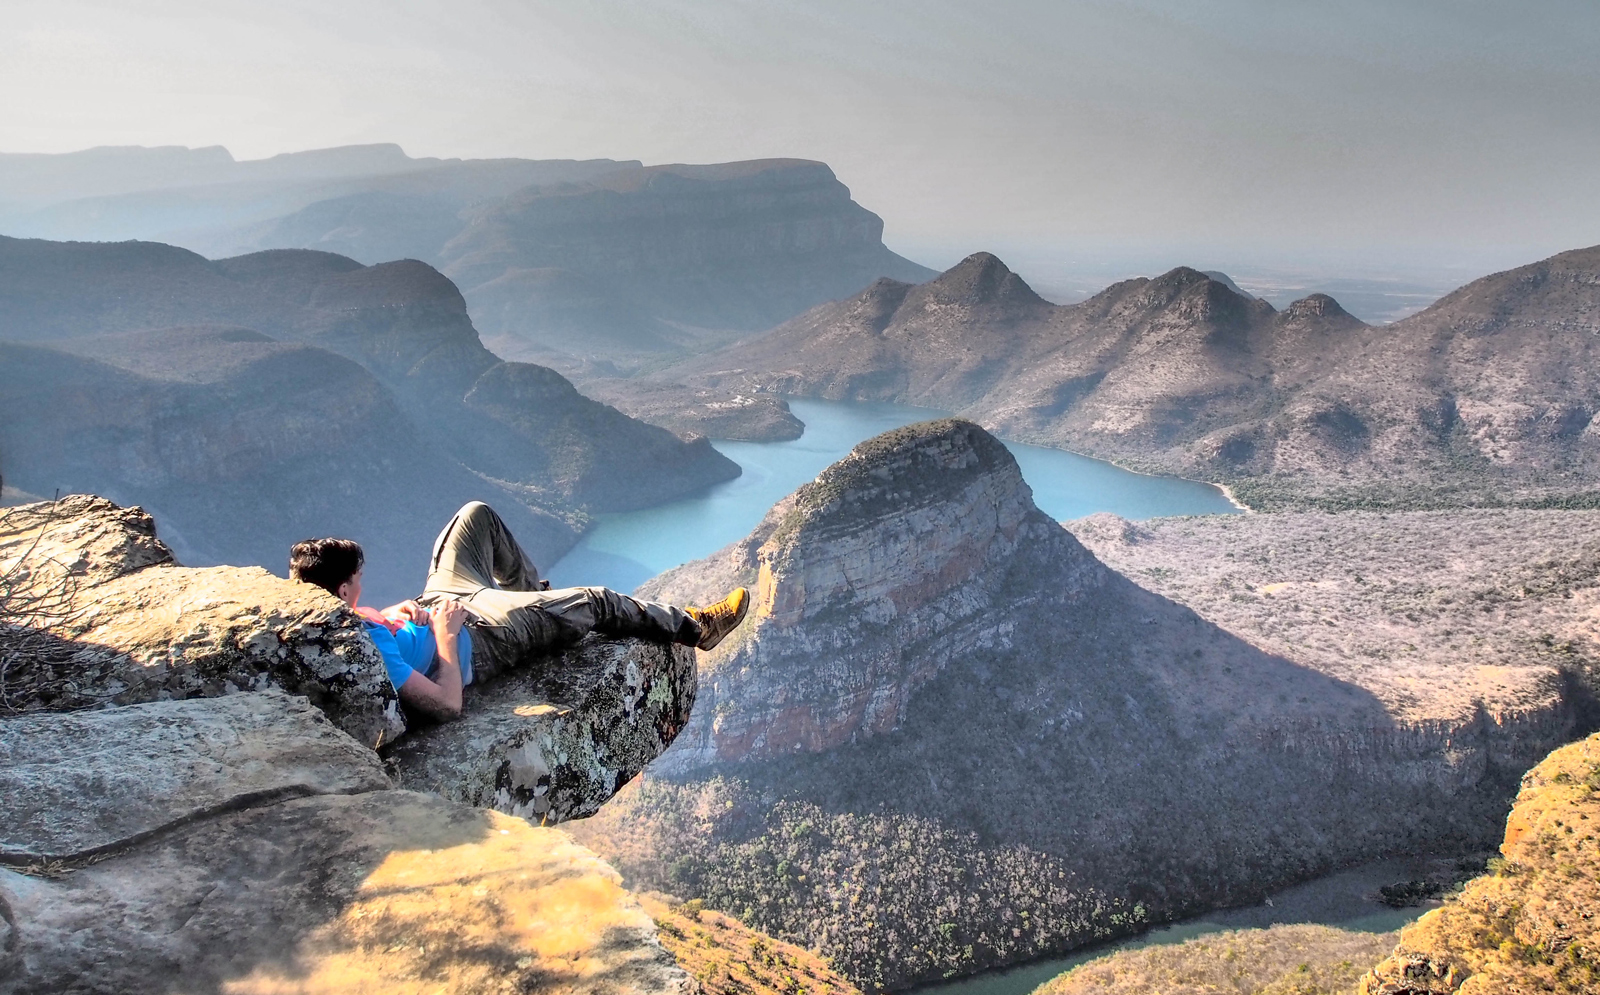 Kicking back above Blyde River Canyon, South Africa ©David Dinu